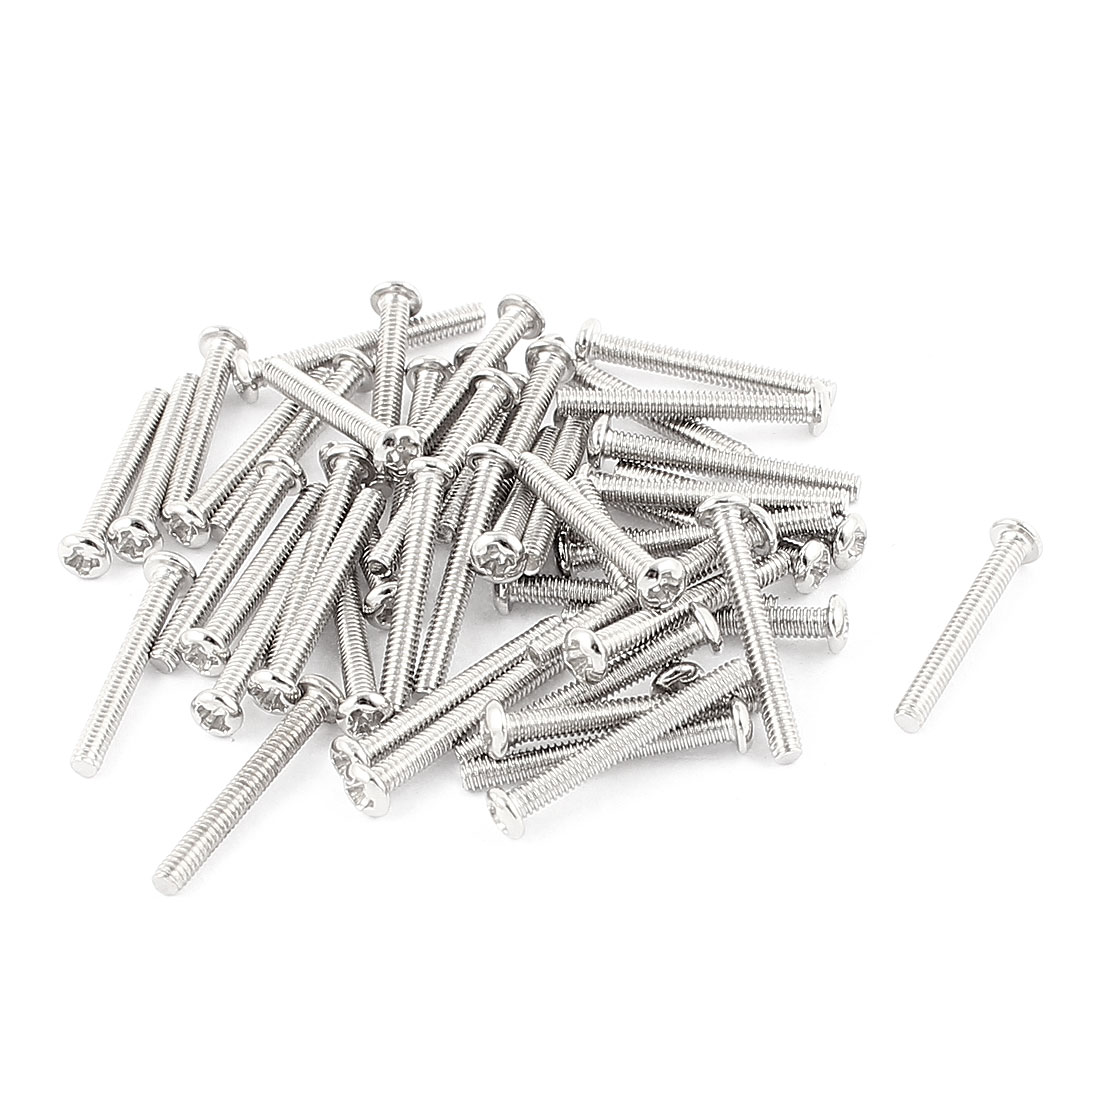 50 Pcs M2x16mm Stainless Steel Round Head Phillips Machine Screws Bolts